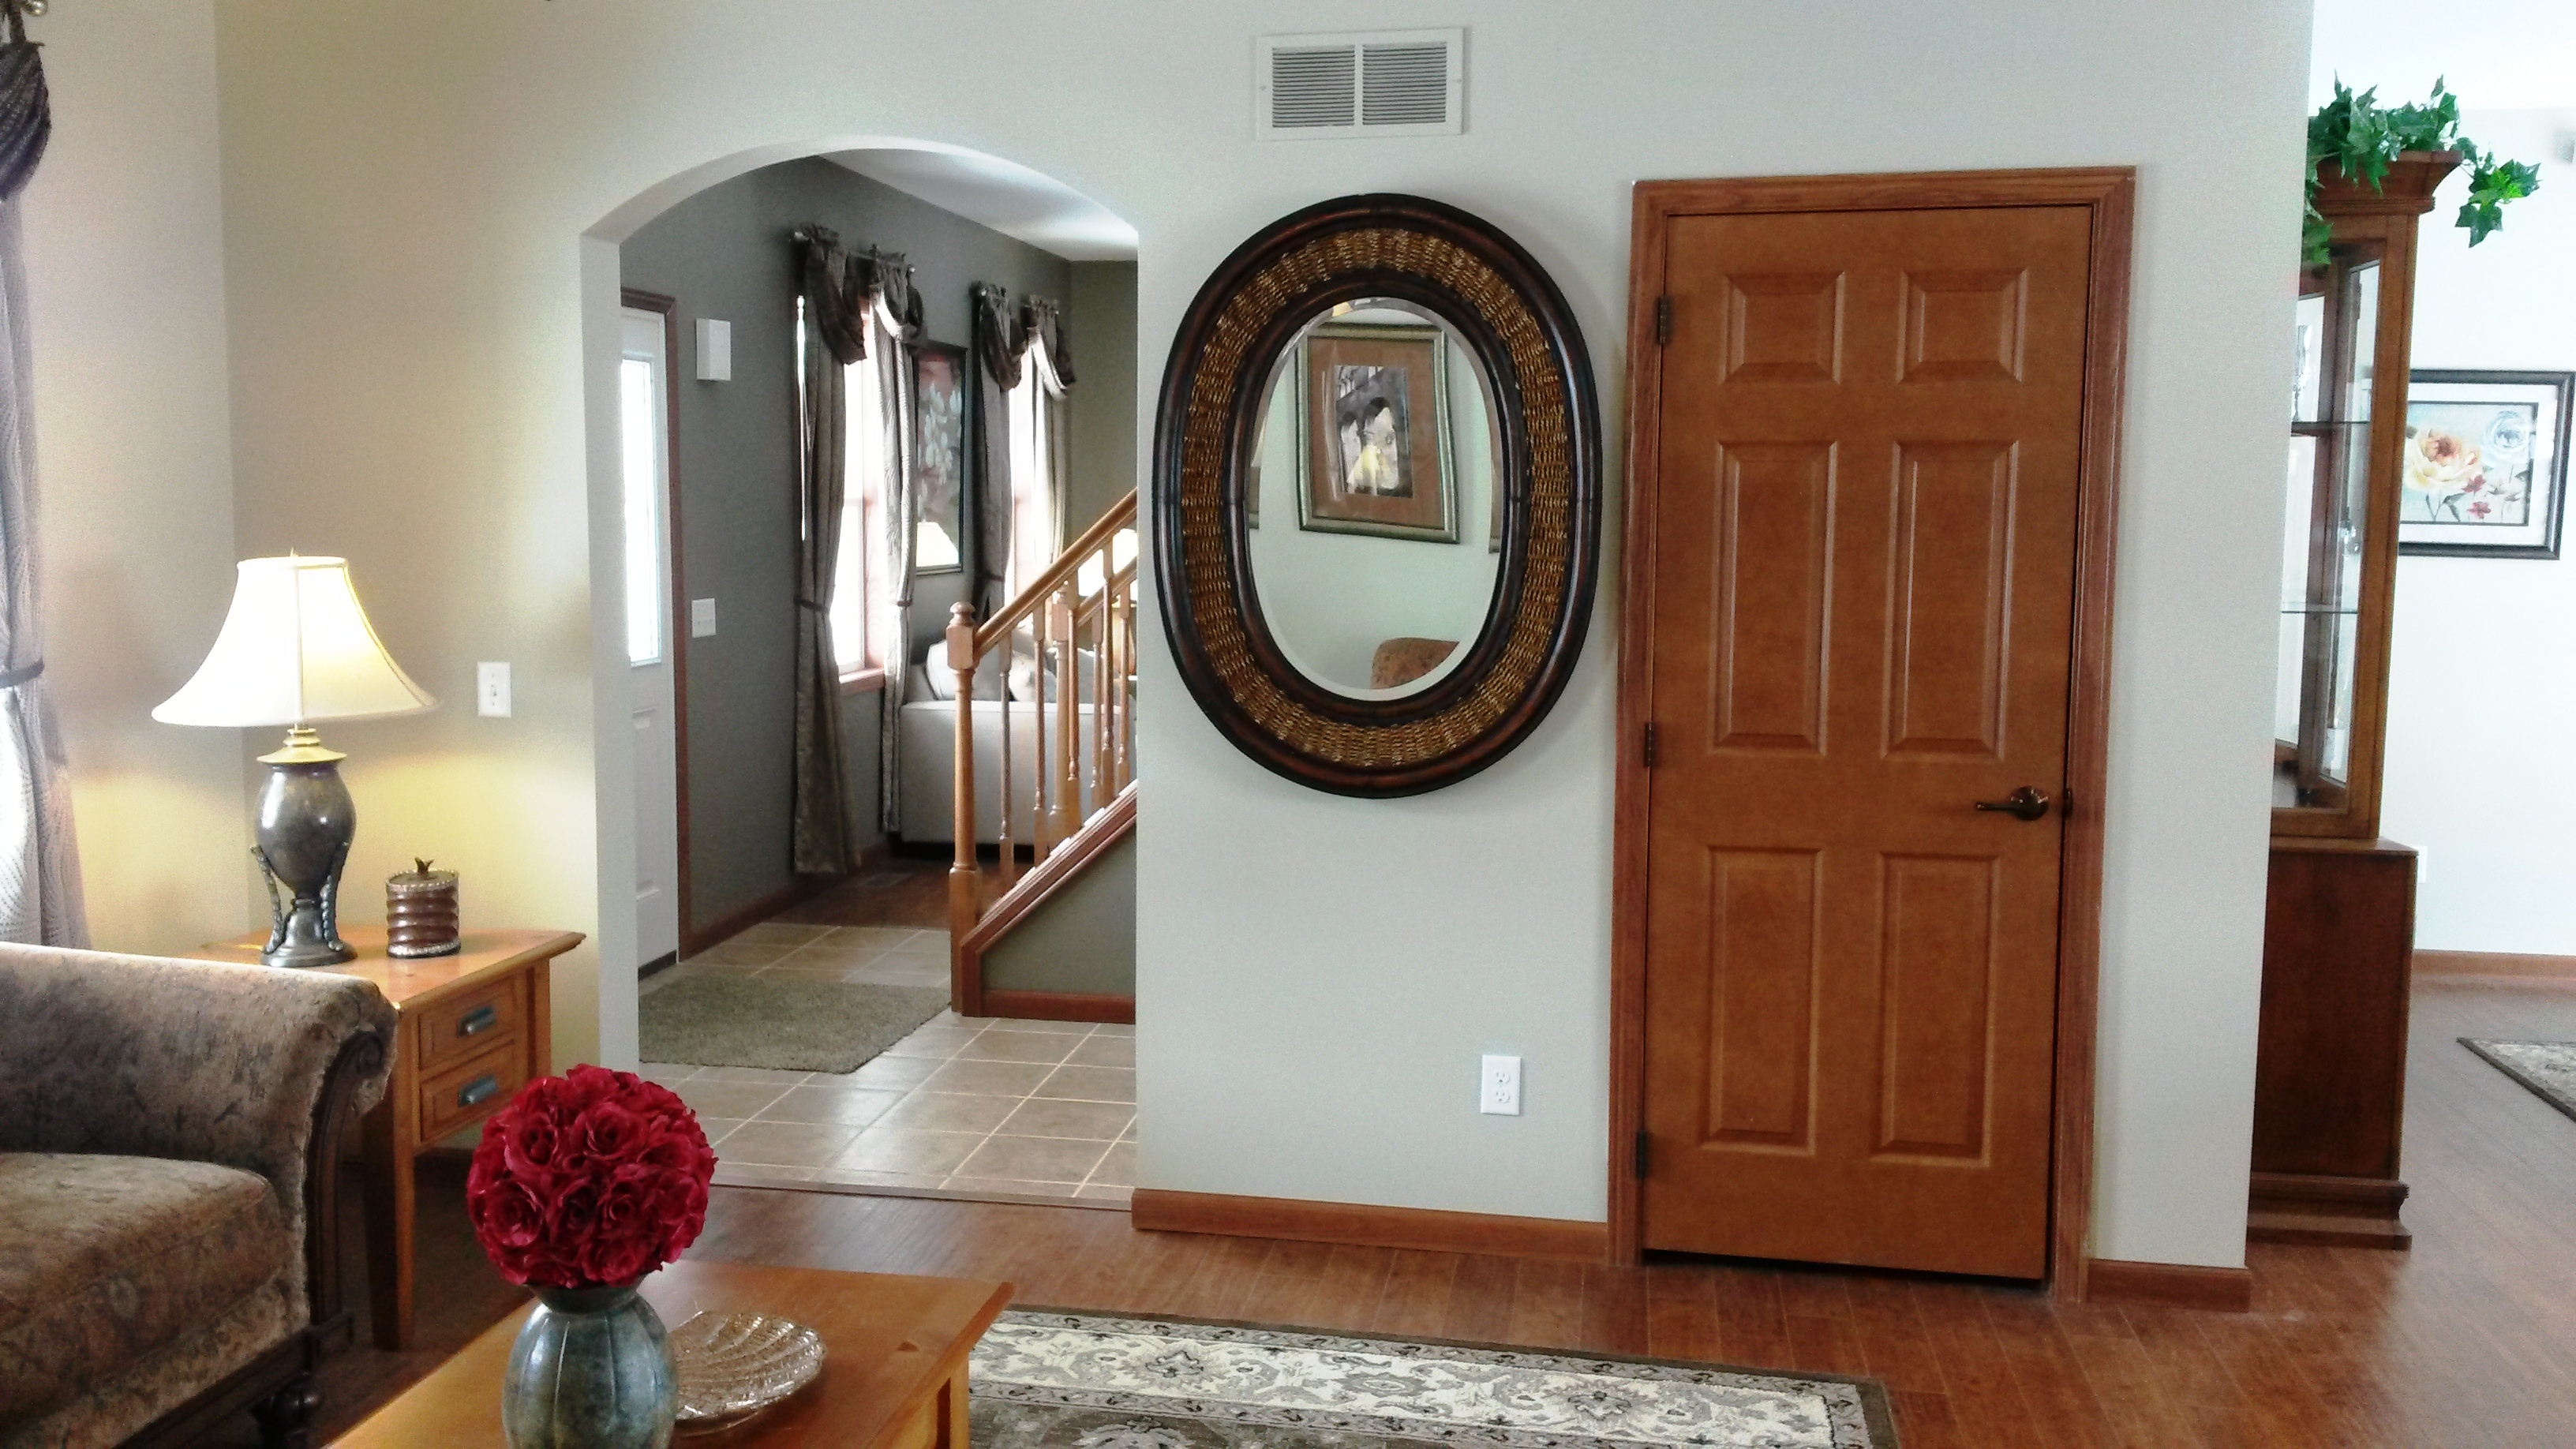 Family room, to the right as you enter the home.